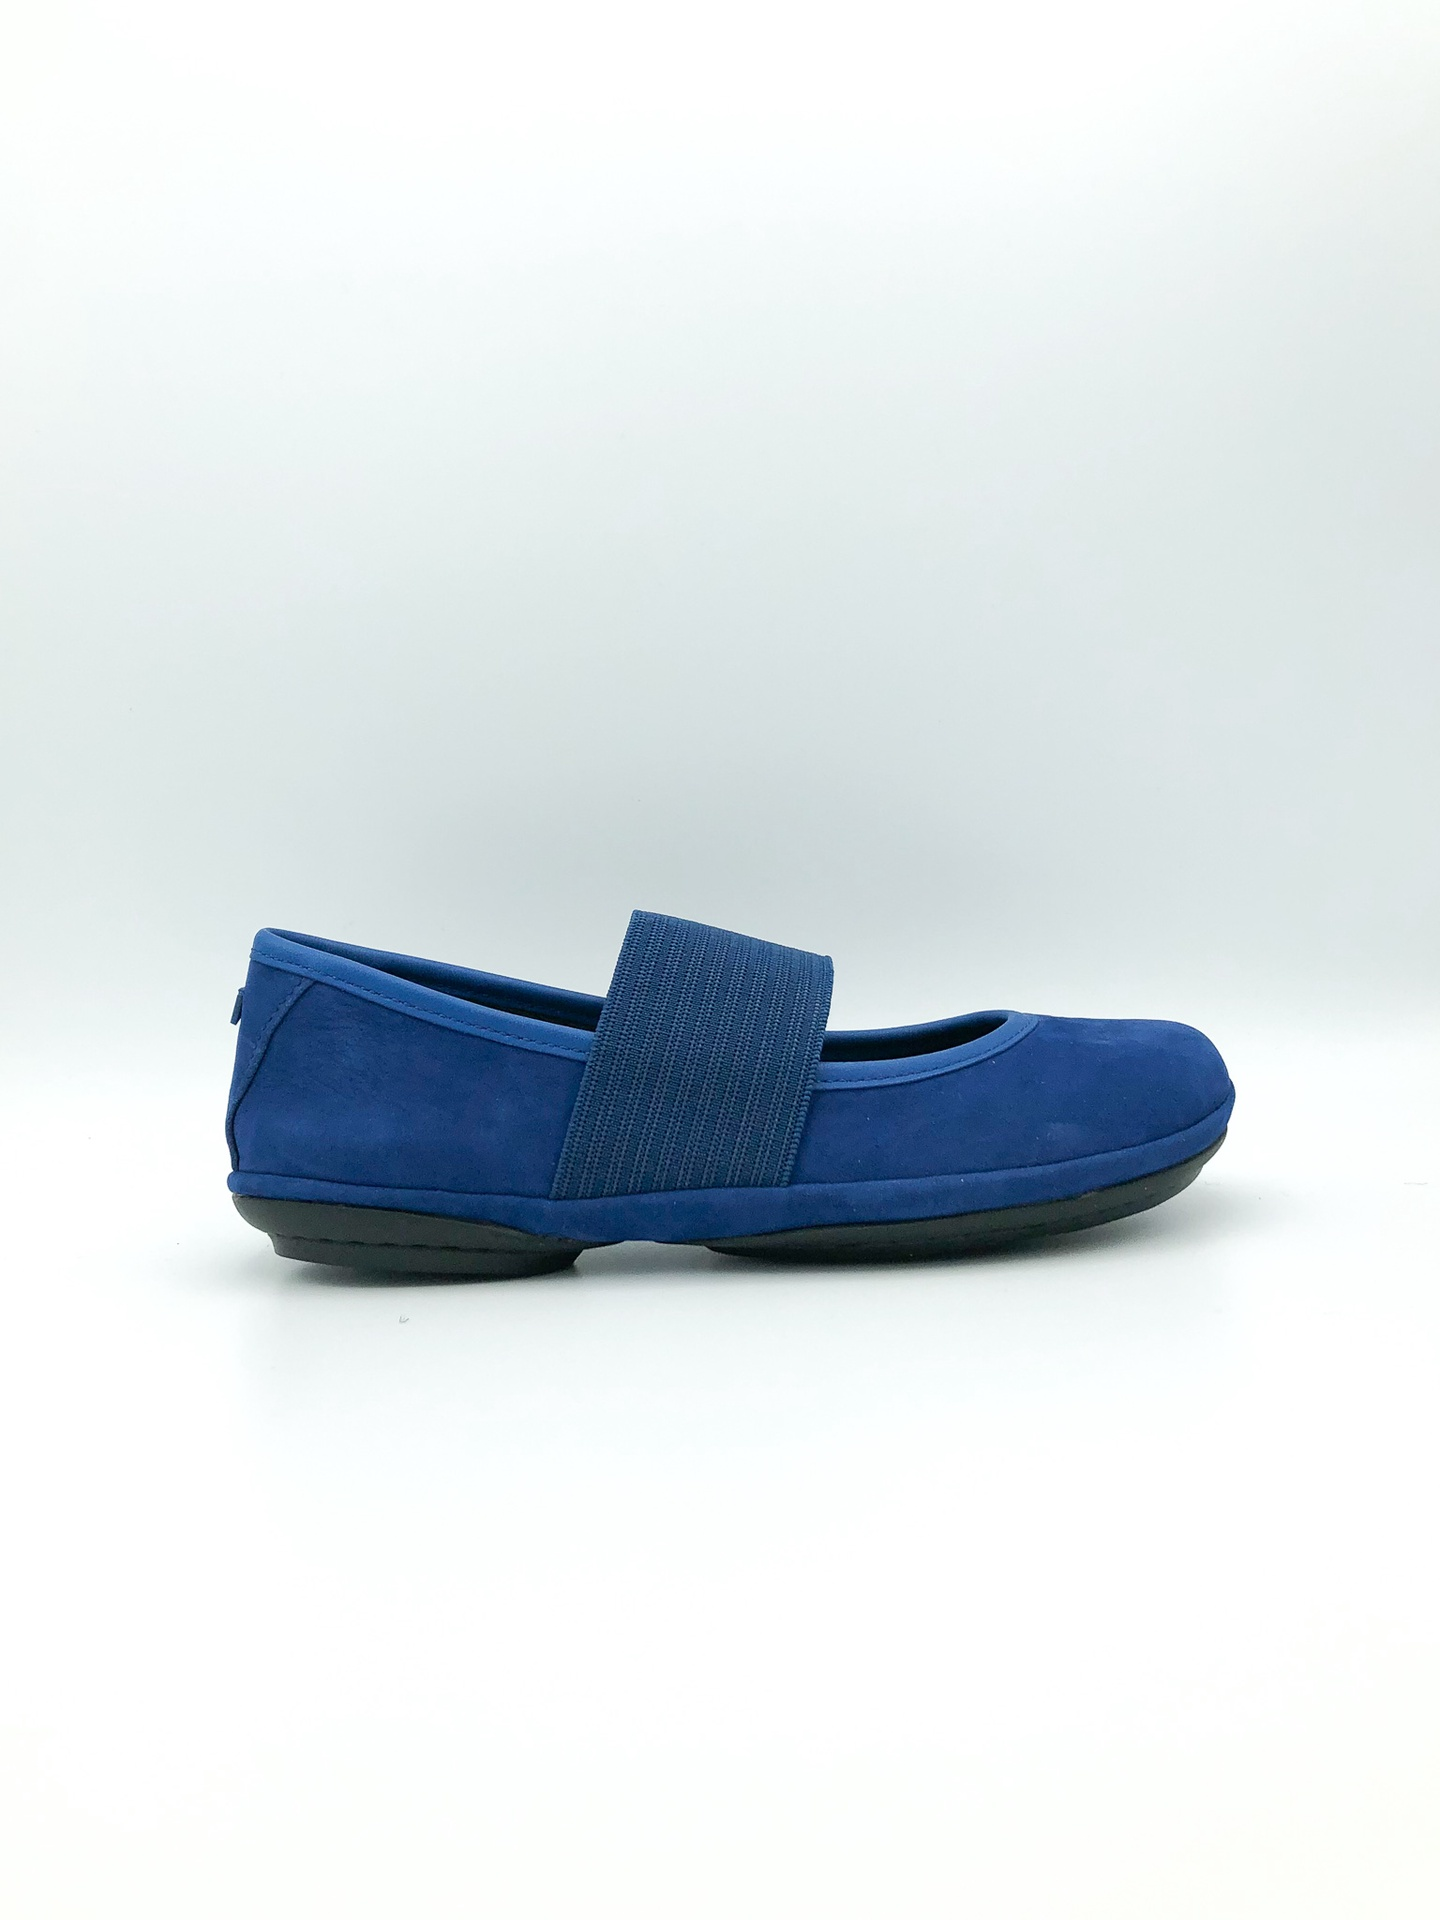 CAMPER - RIGHT NINA IN BLUE SUEDE 21595-129